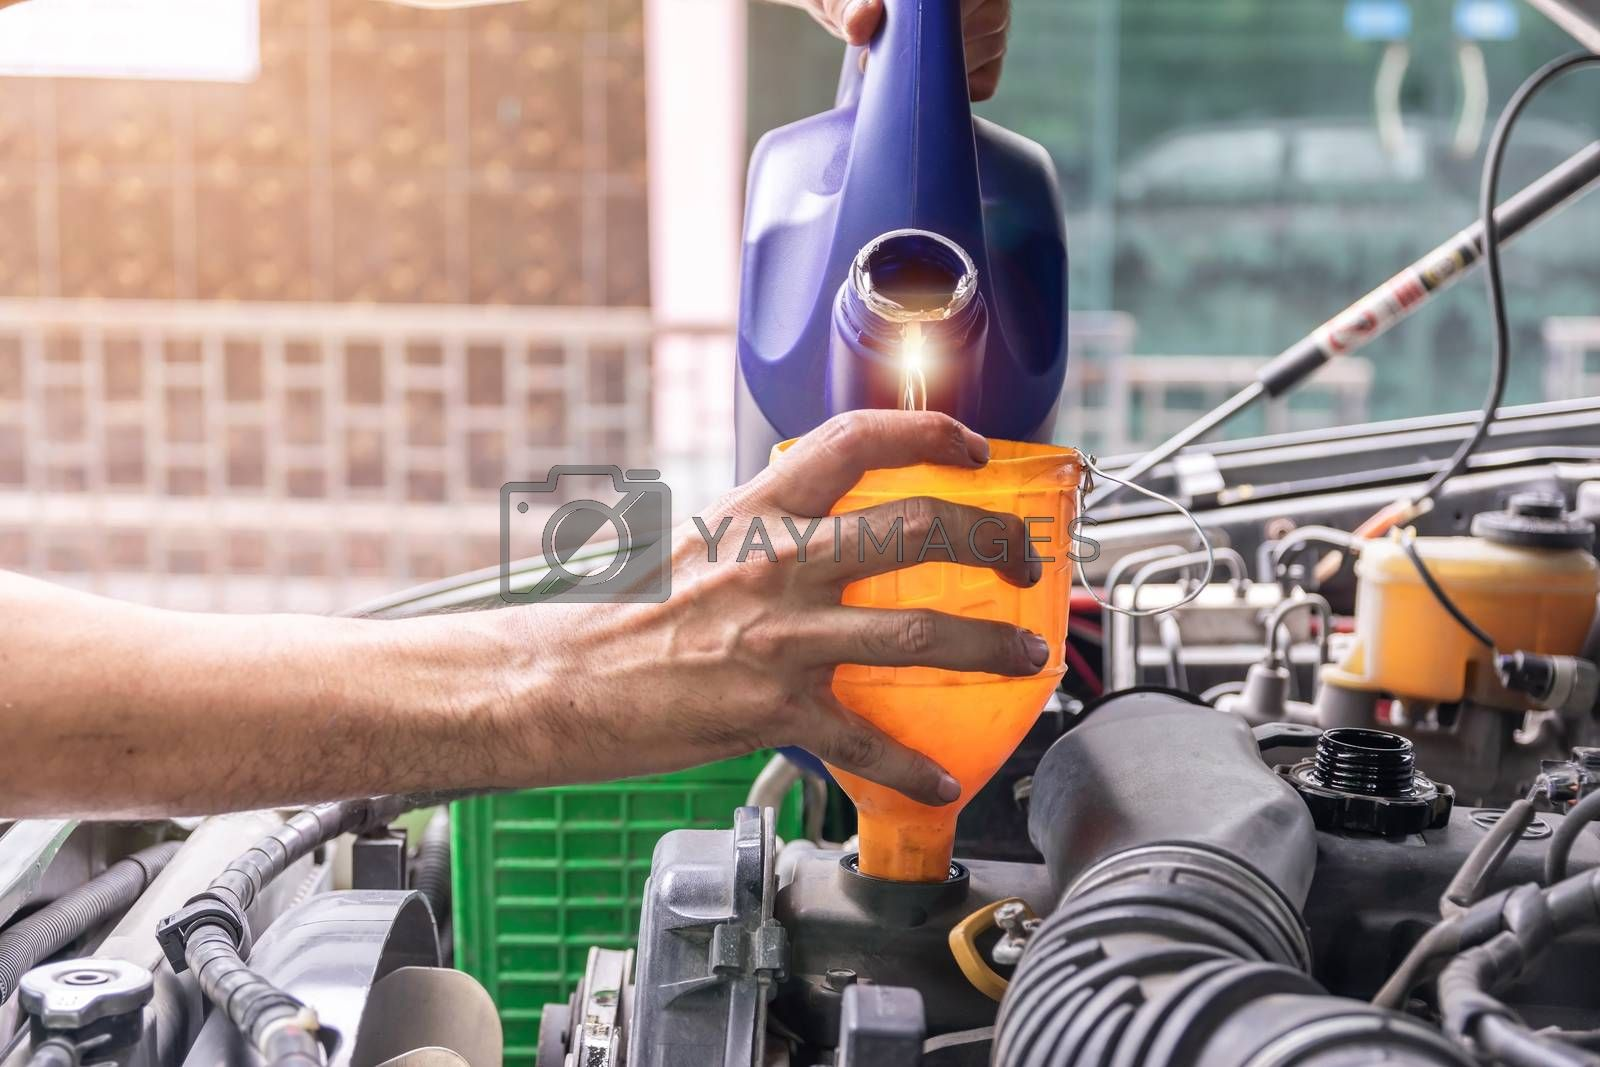 Auto mechanic is filling up the car's engine oil inside the auto repair center, the auto industry and garage ideas.